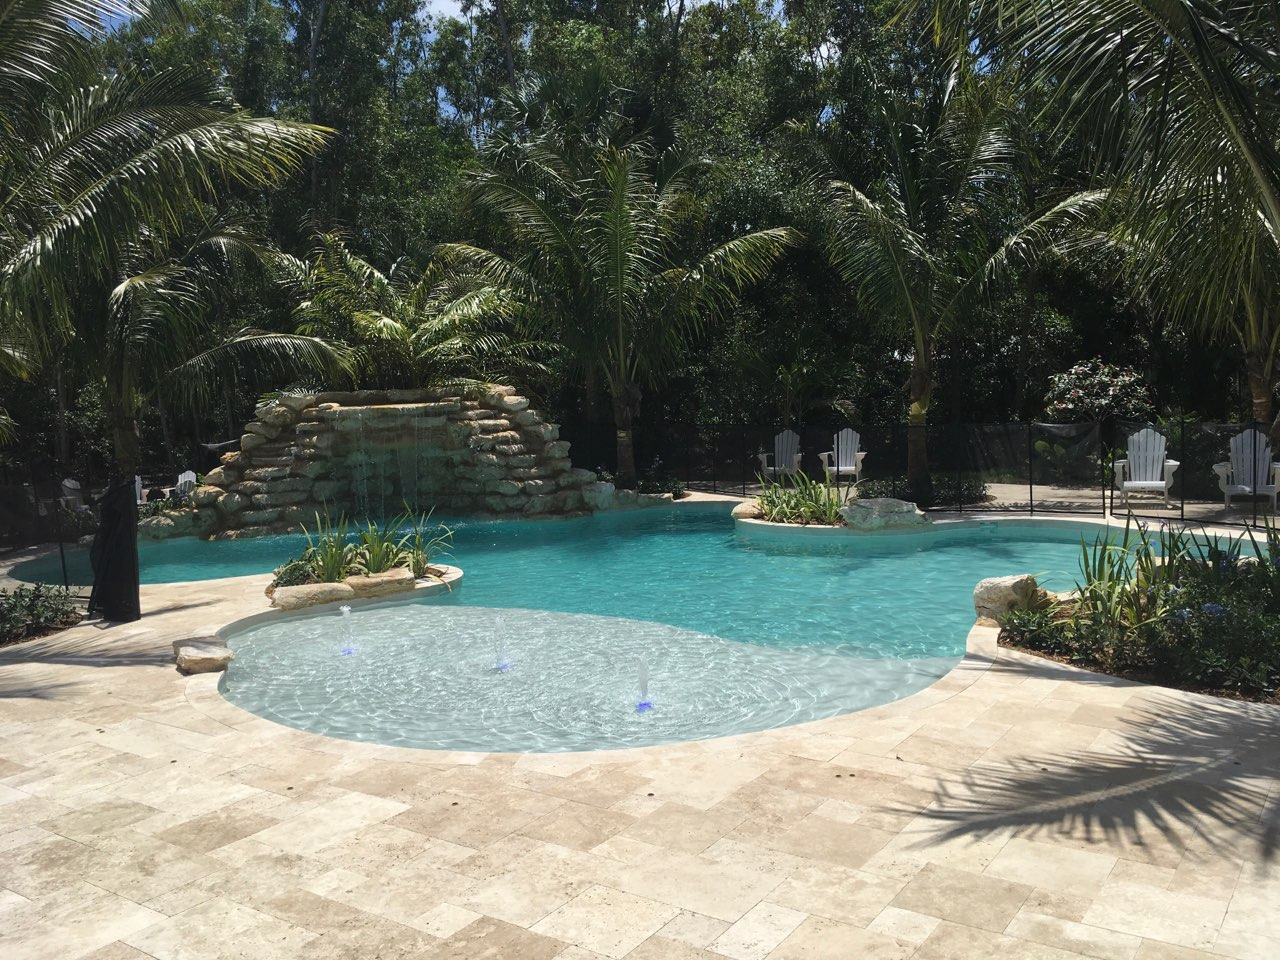 rhr pools of jupiter fl organic shaped pool with rock waterfall feature